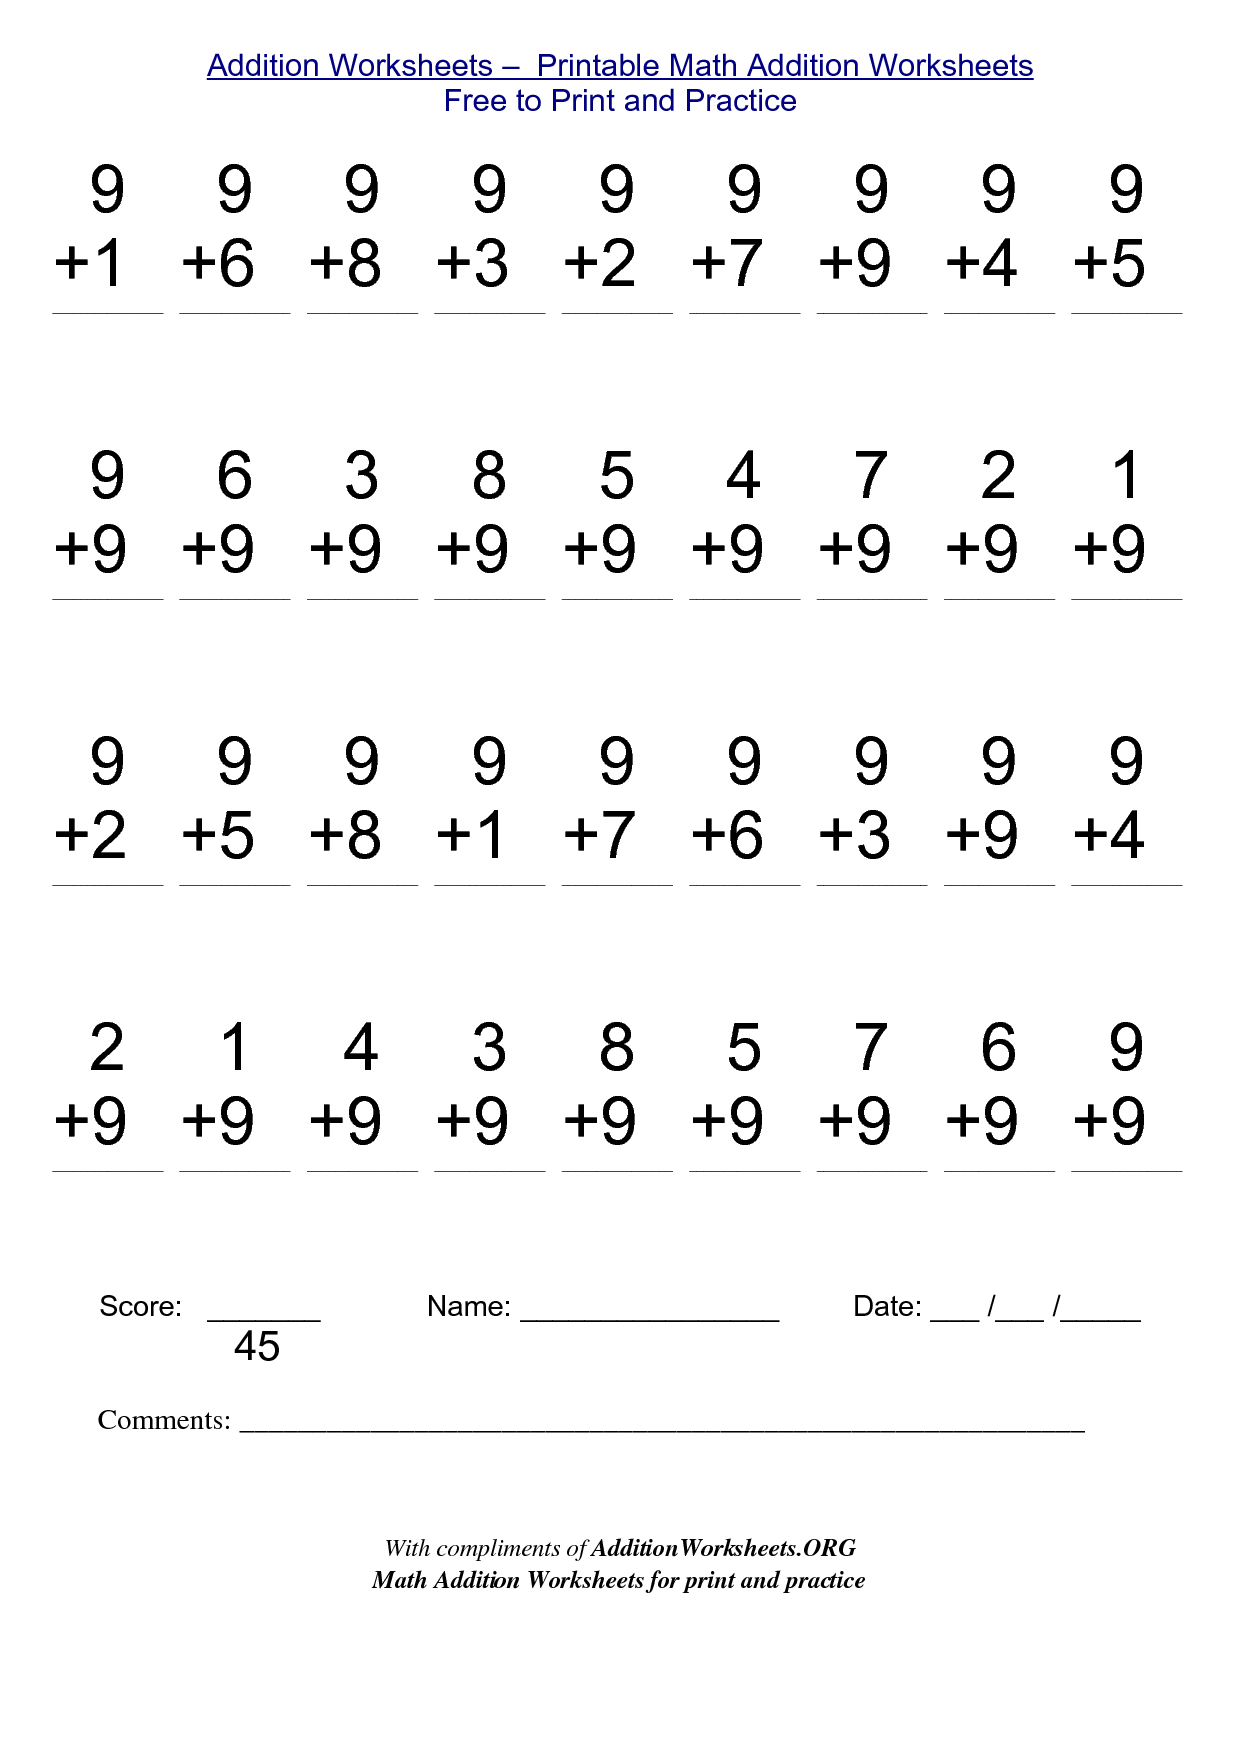 Math Worksheets for Free to Print Alot ME – Free Grade 2 Math Worksheets